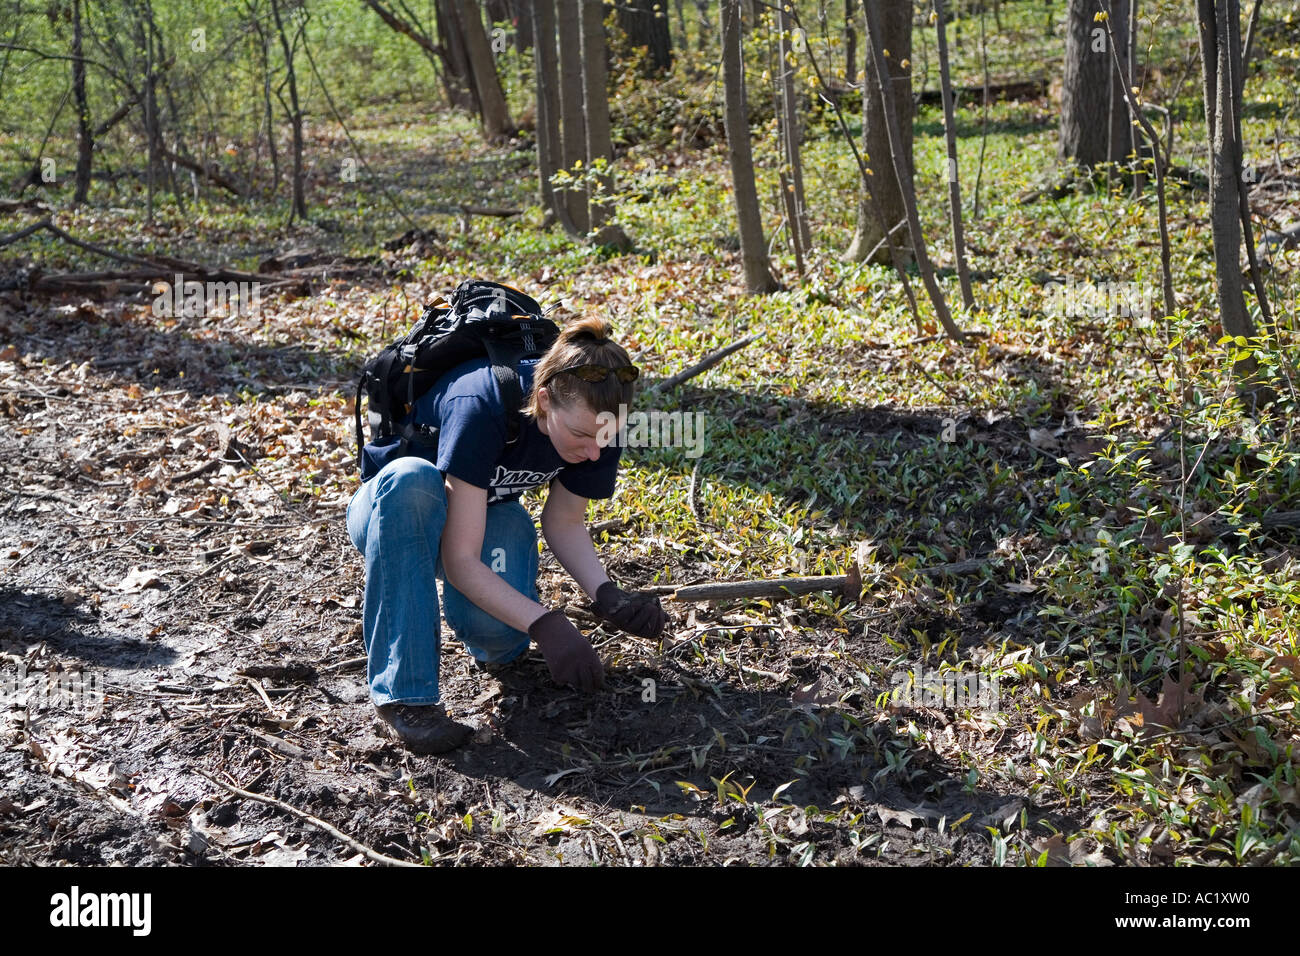 Volunteers Clean Trash from Park on Earth Day - Stock Image